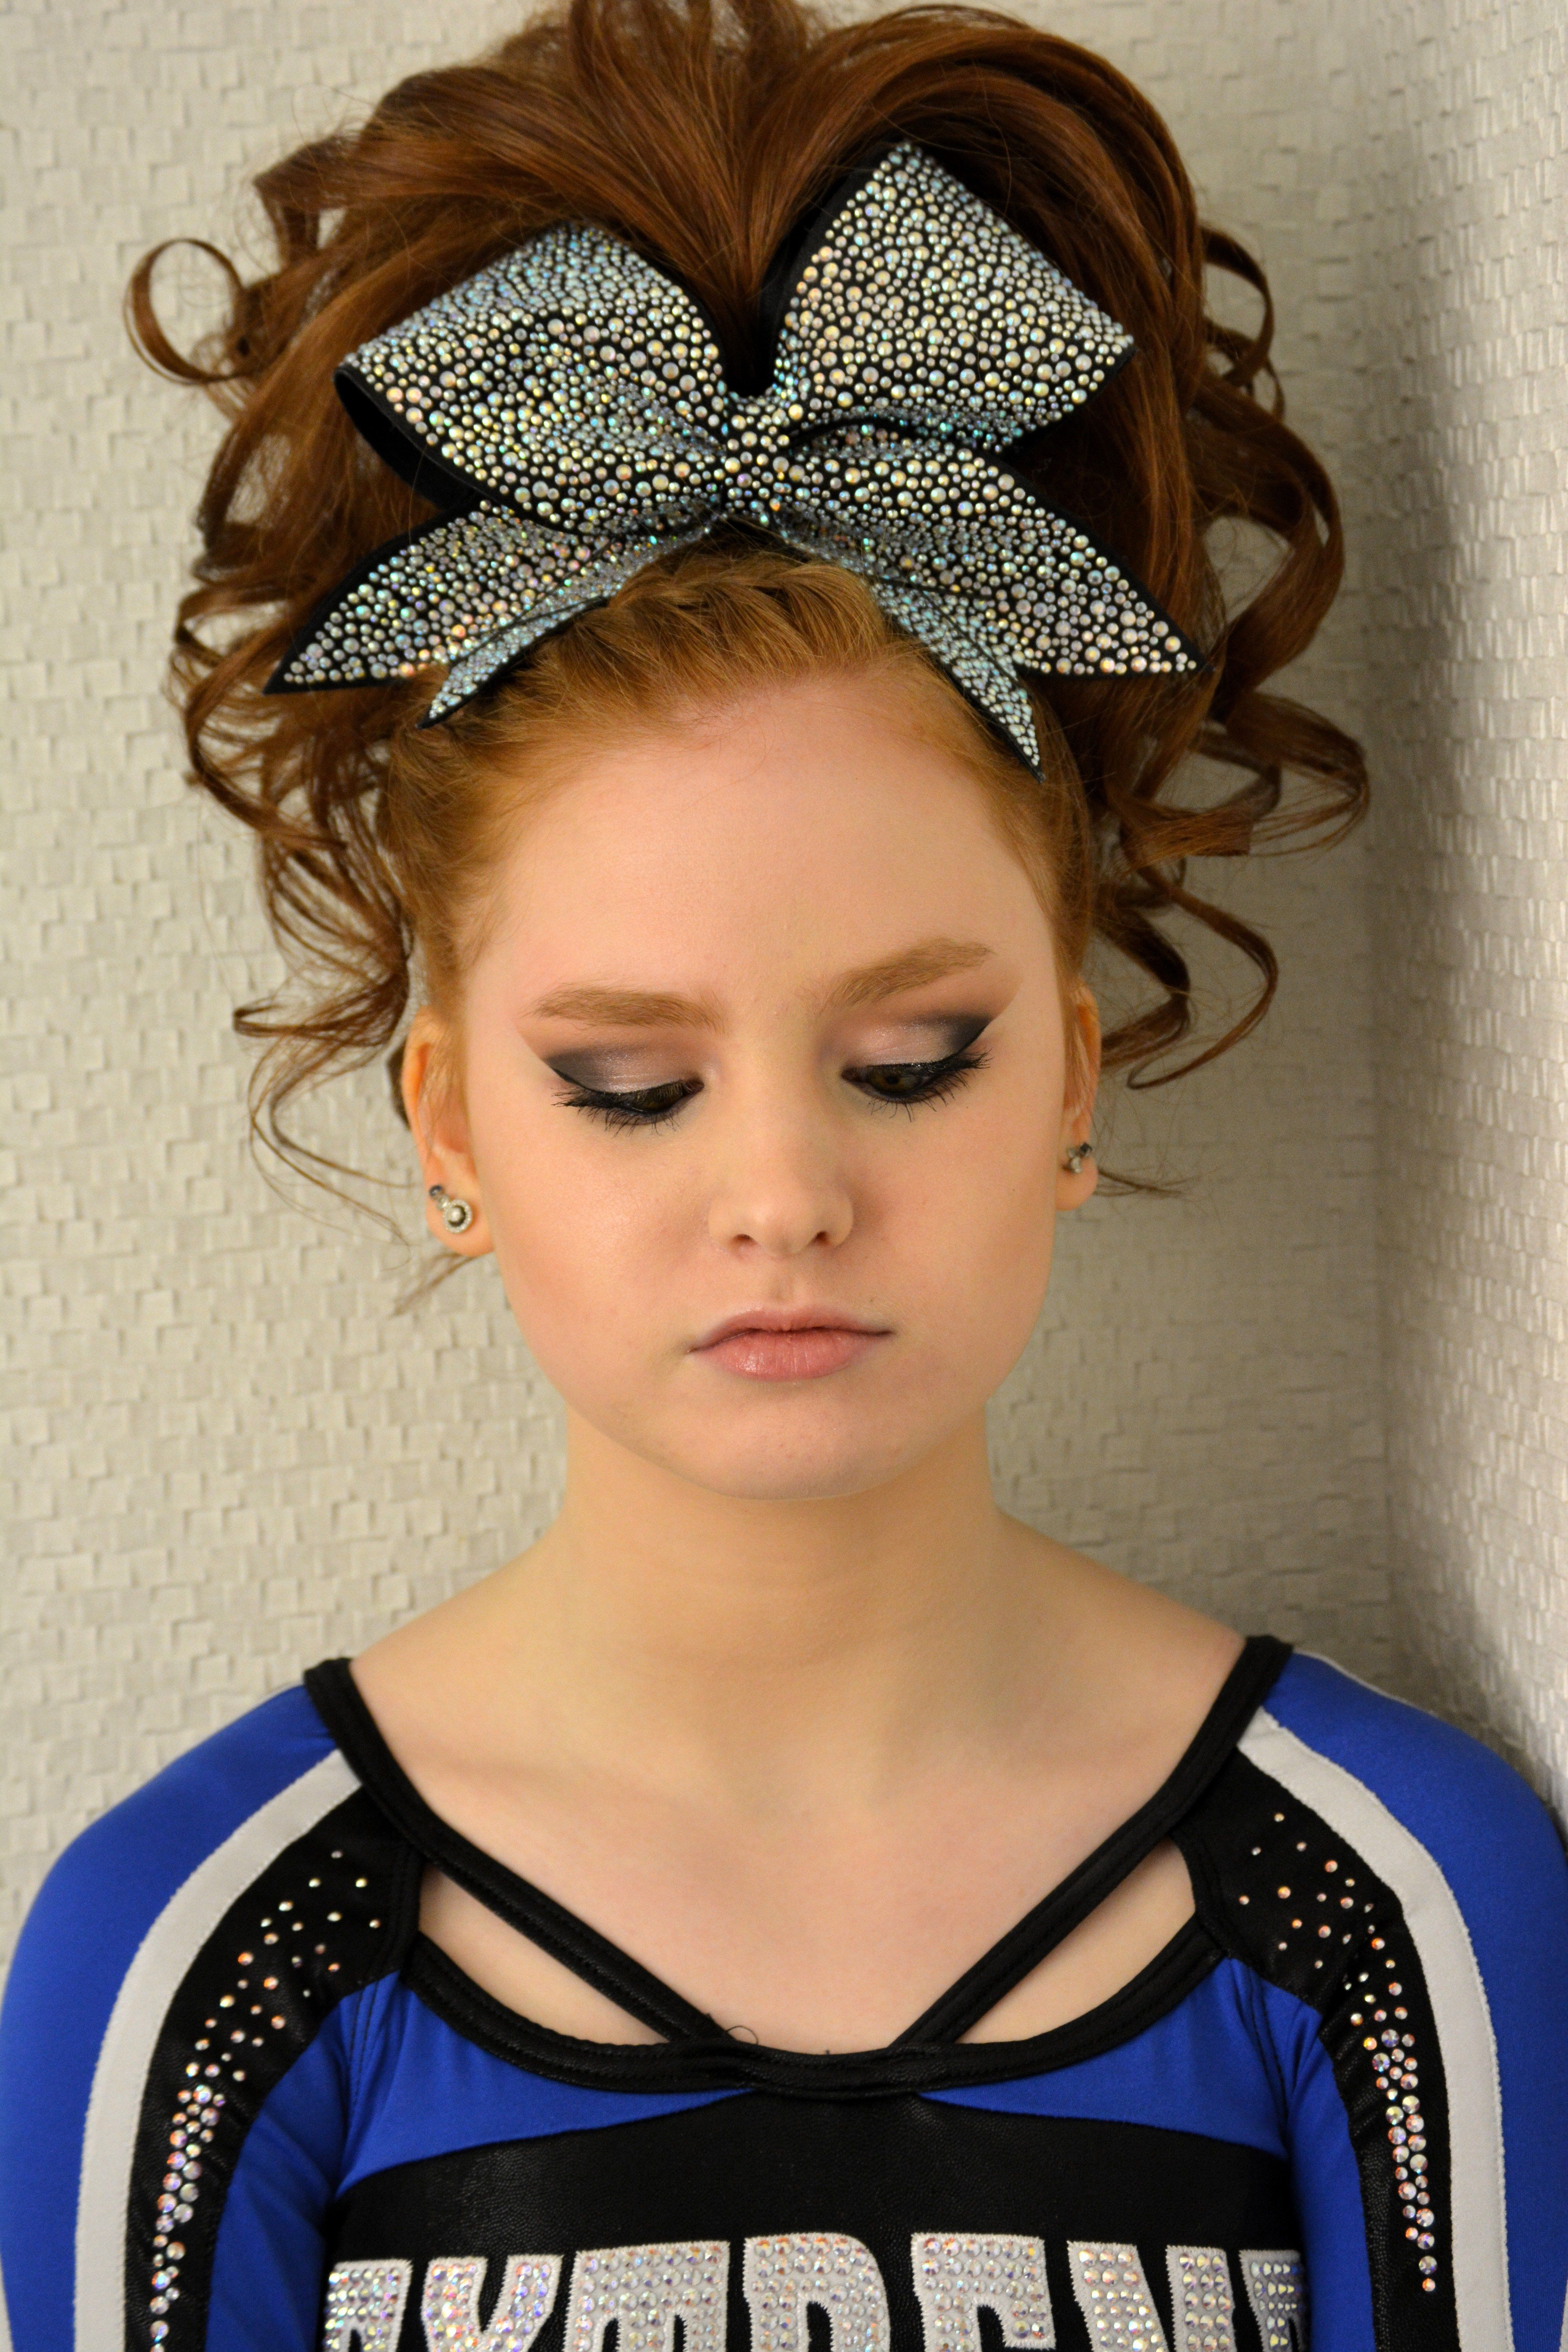 Cheer Hair And Makeup Teased Hair And Teased Hair Cheer Hair Cheer Makeup